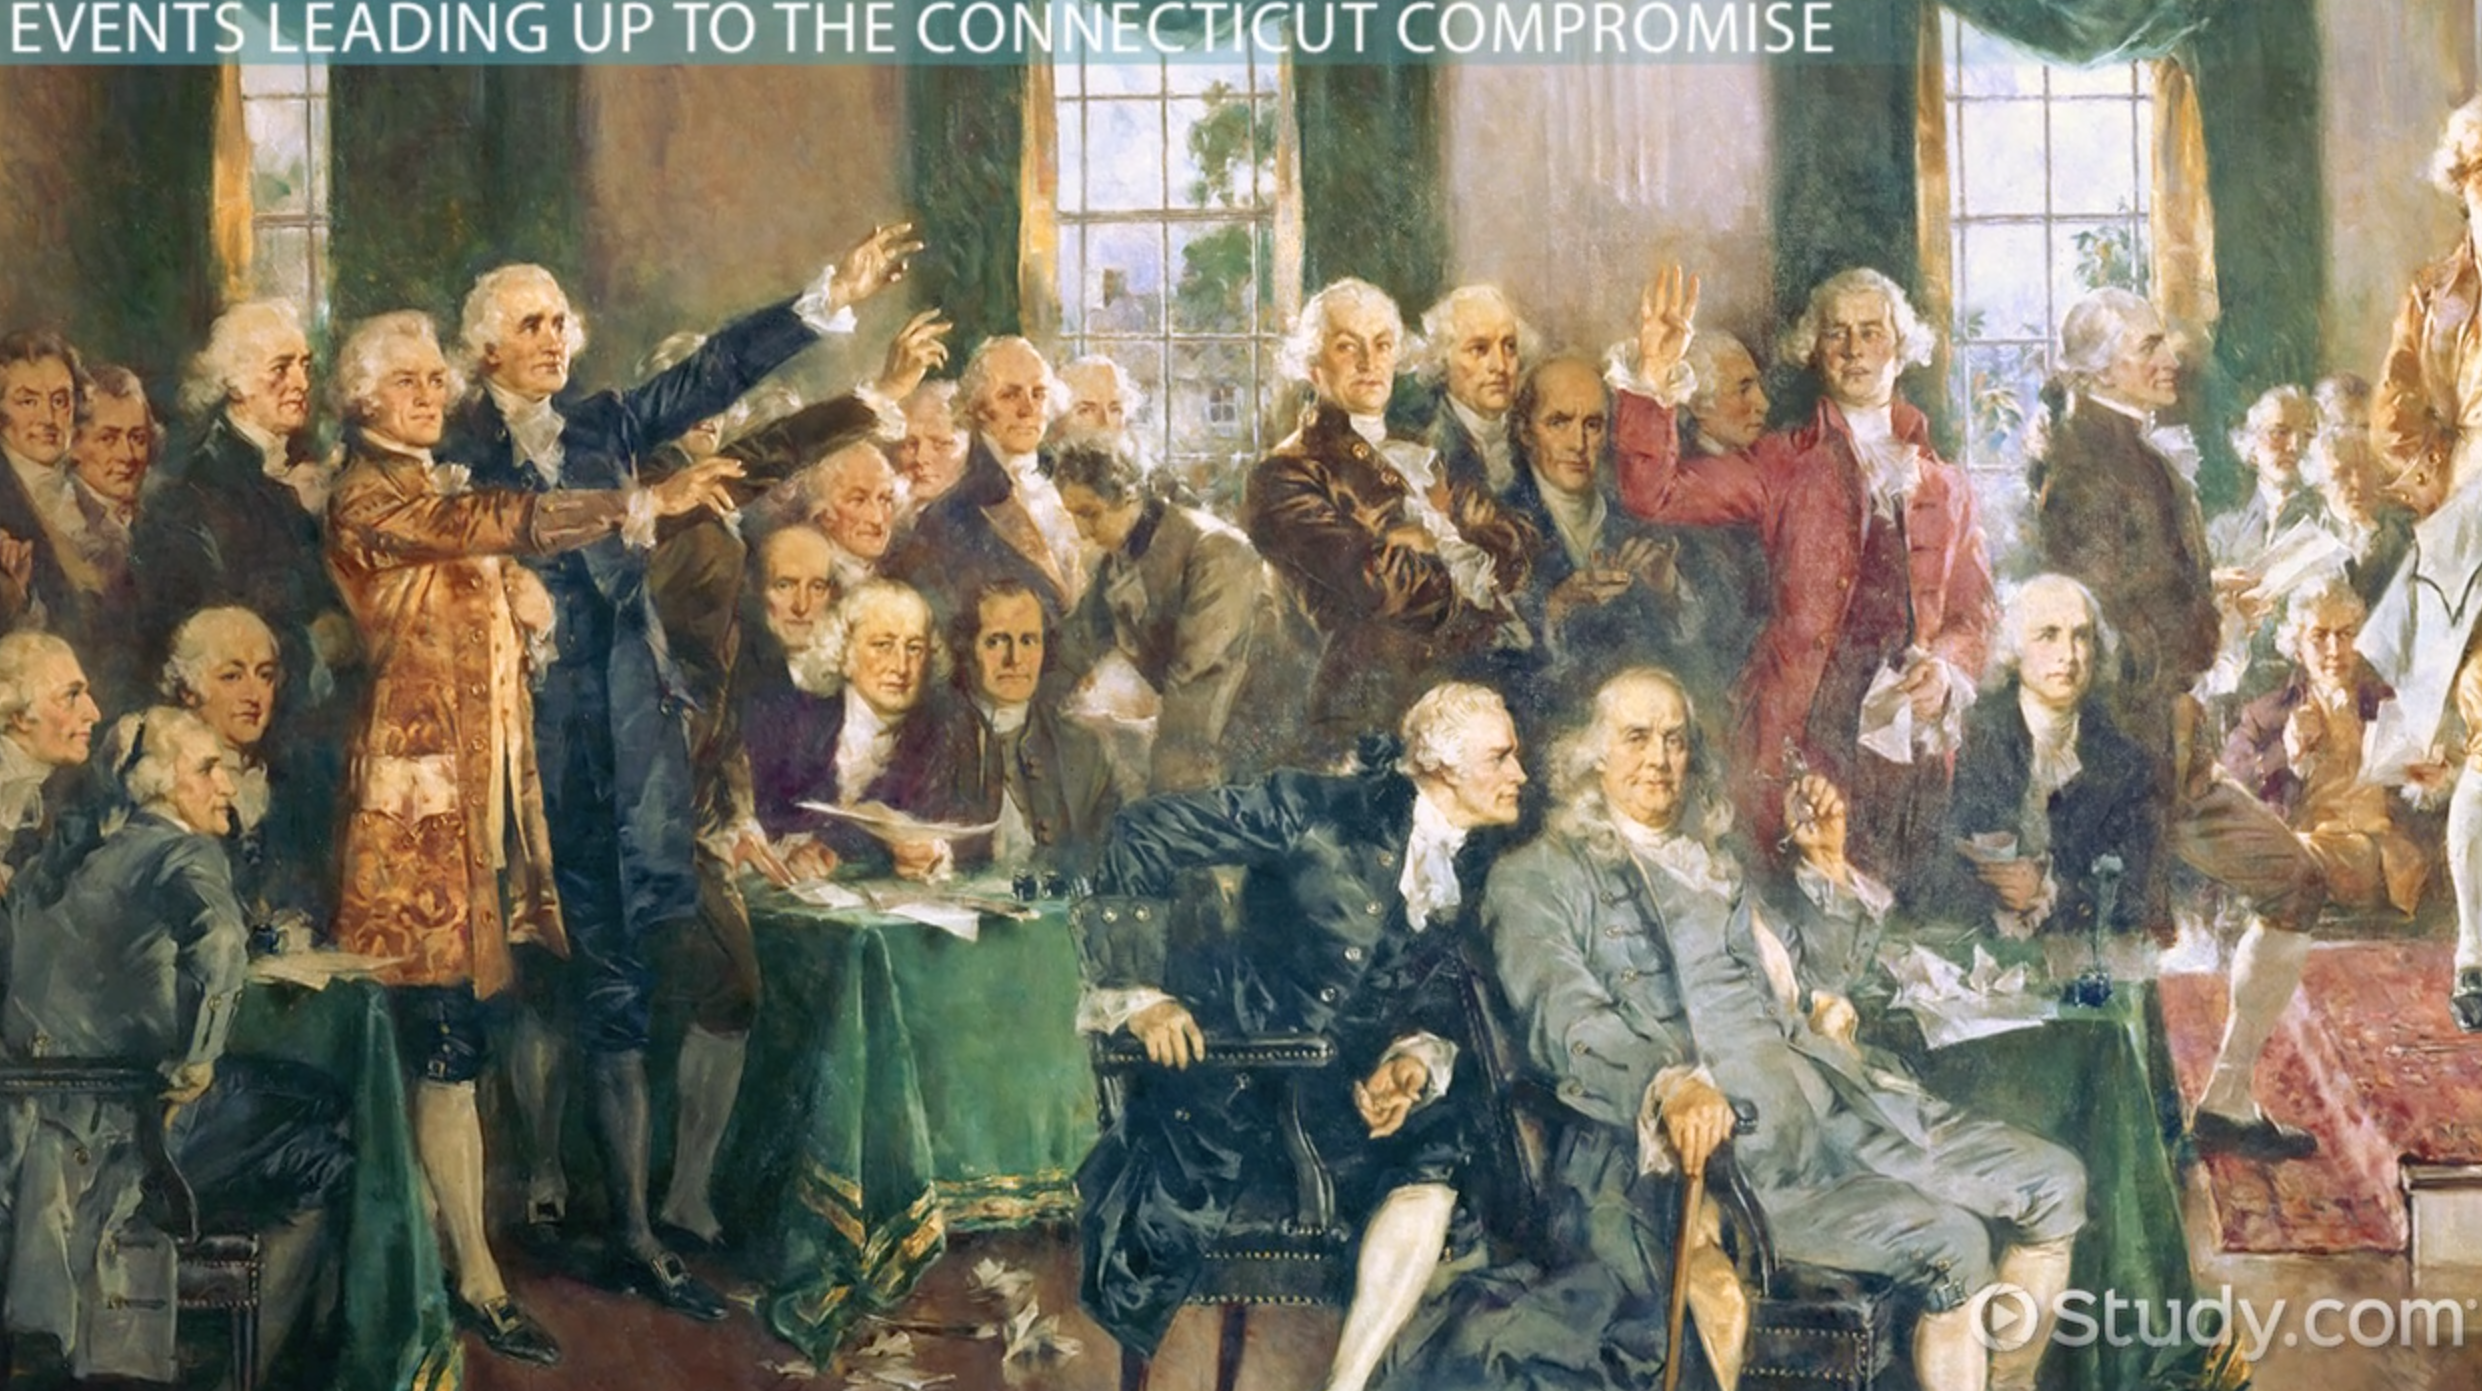 essays on the great compromise Essays related to compromise 1 compromise of 1850 compromise essay compromises happen everyday, and it happened everyday since the past two examples i have.